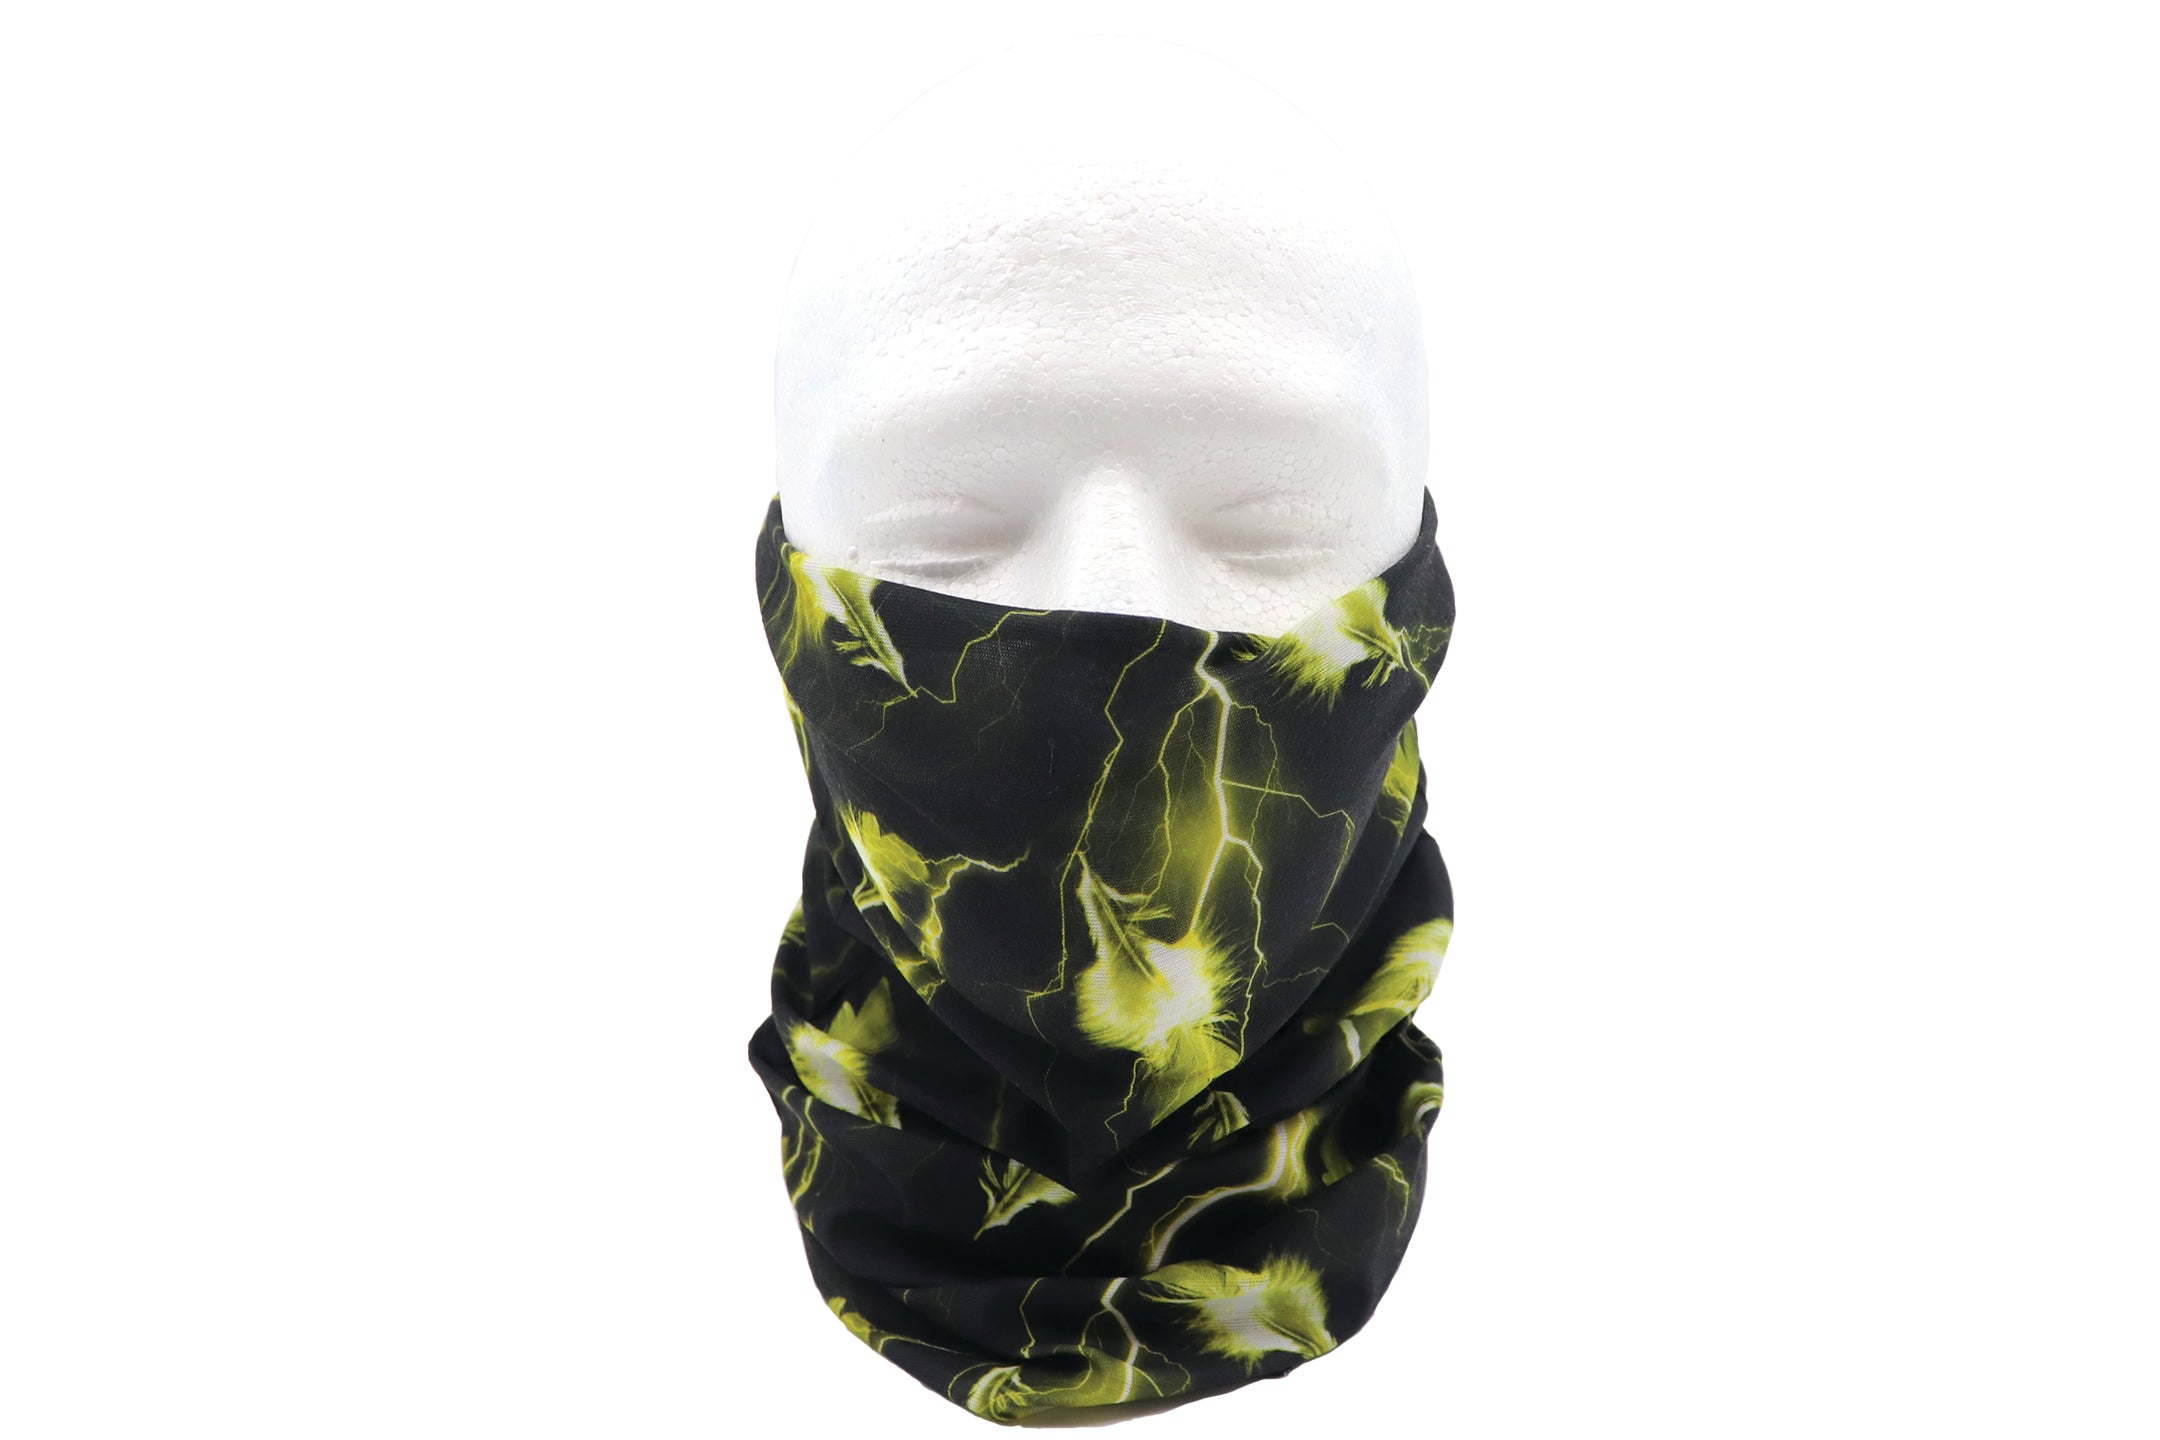 Gaiter face mask for sports, head wear, neck, sun and particles protection. Lightweight color black with yellow feathers and electricity printed all over bandana sleeve.